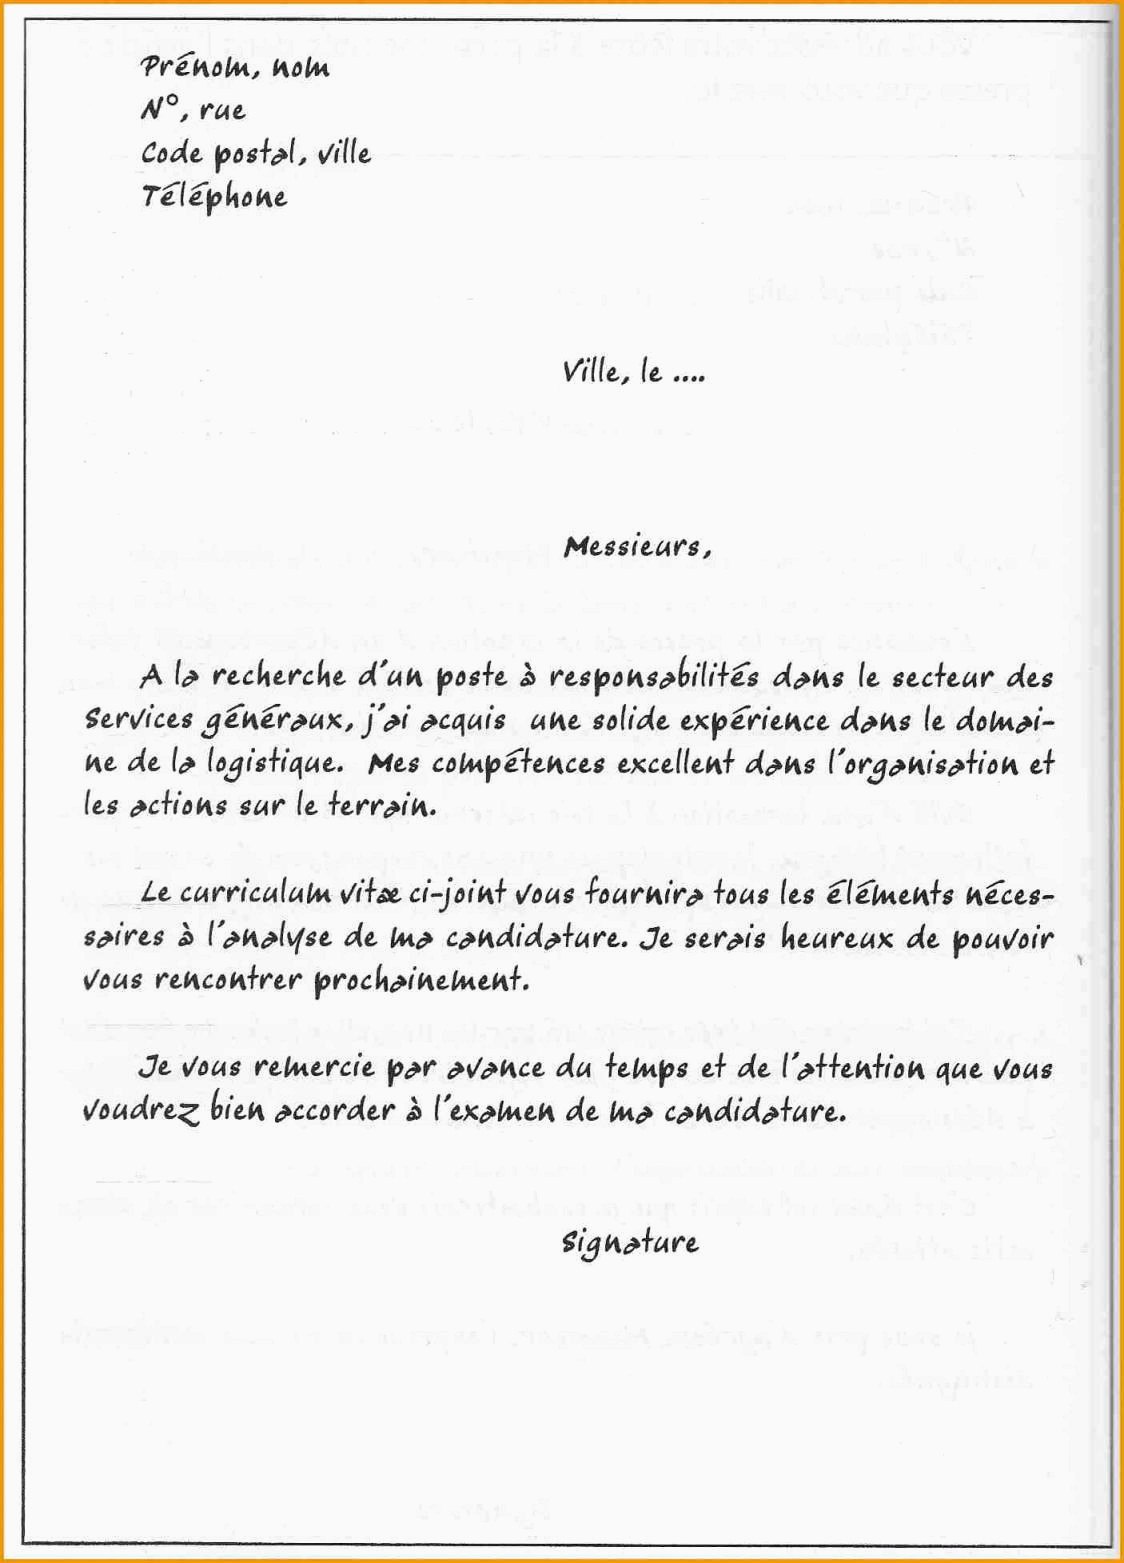 Lettre De Motivation Deaes Lettre De Motivation formation Deaes Lettre Fre De Service Mercial